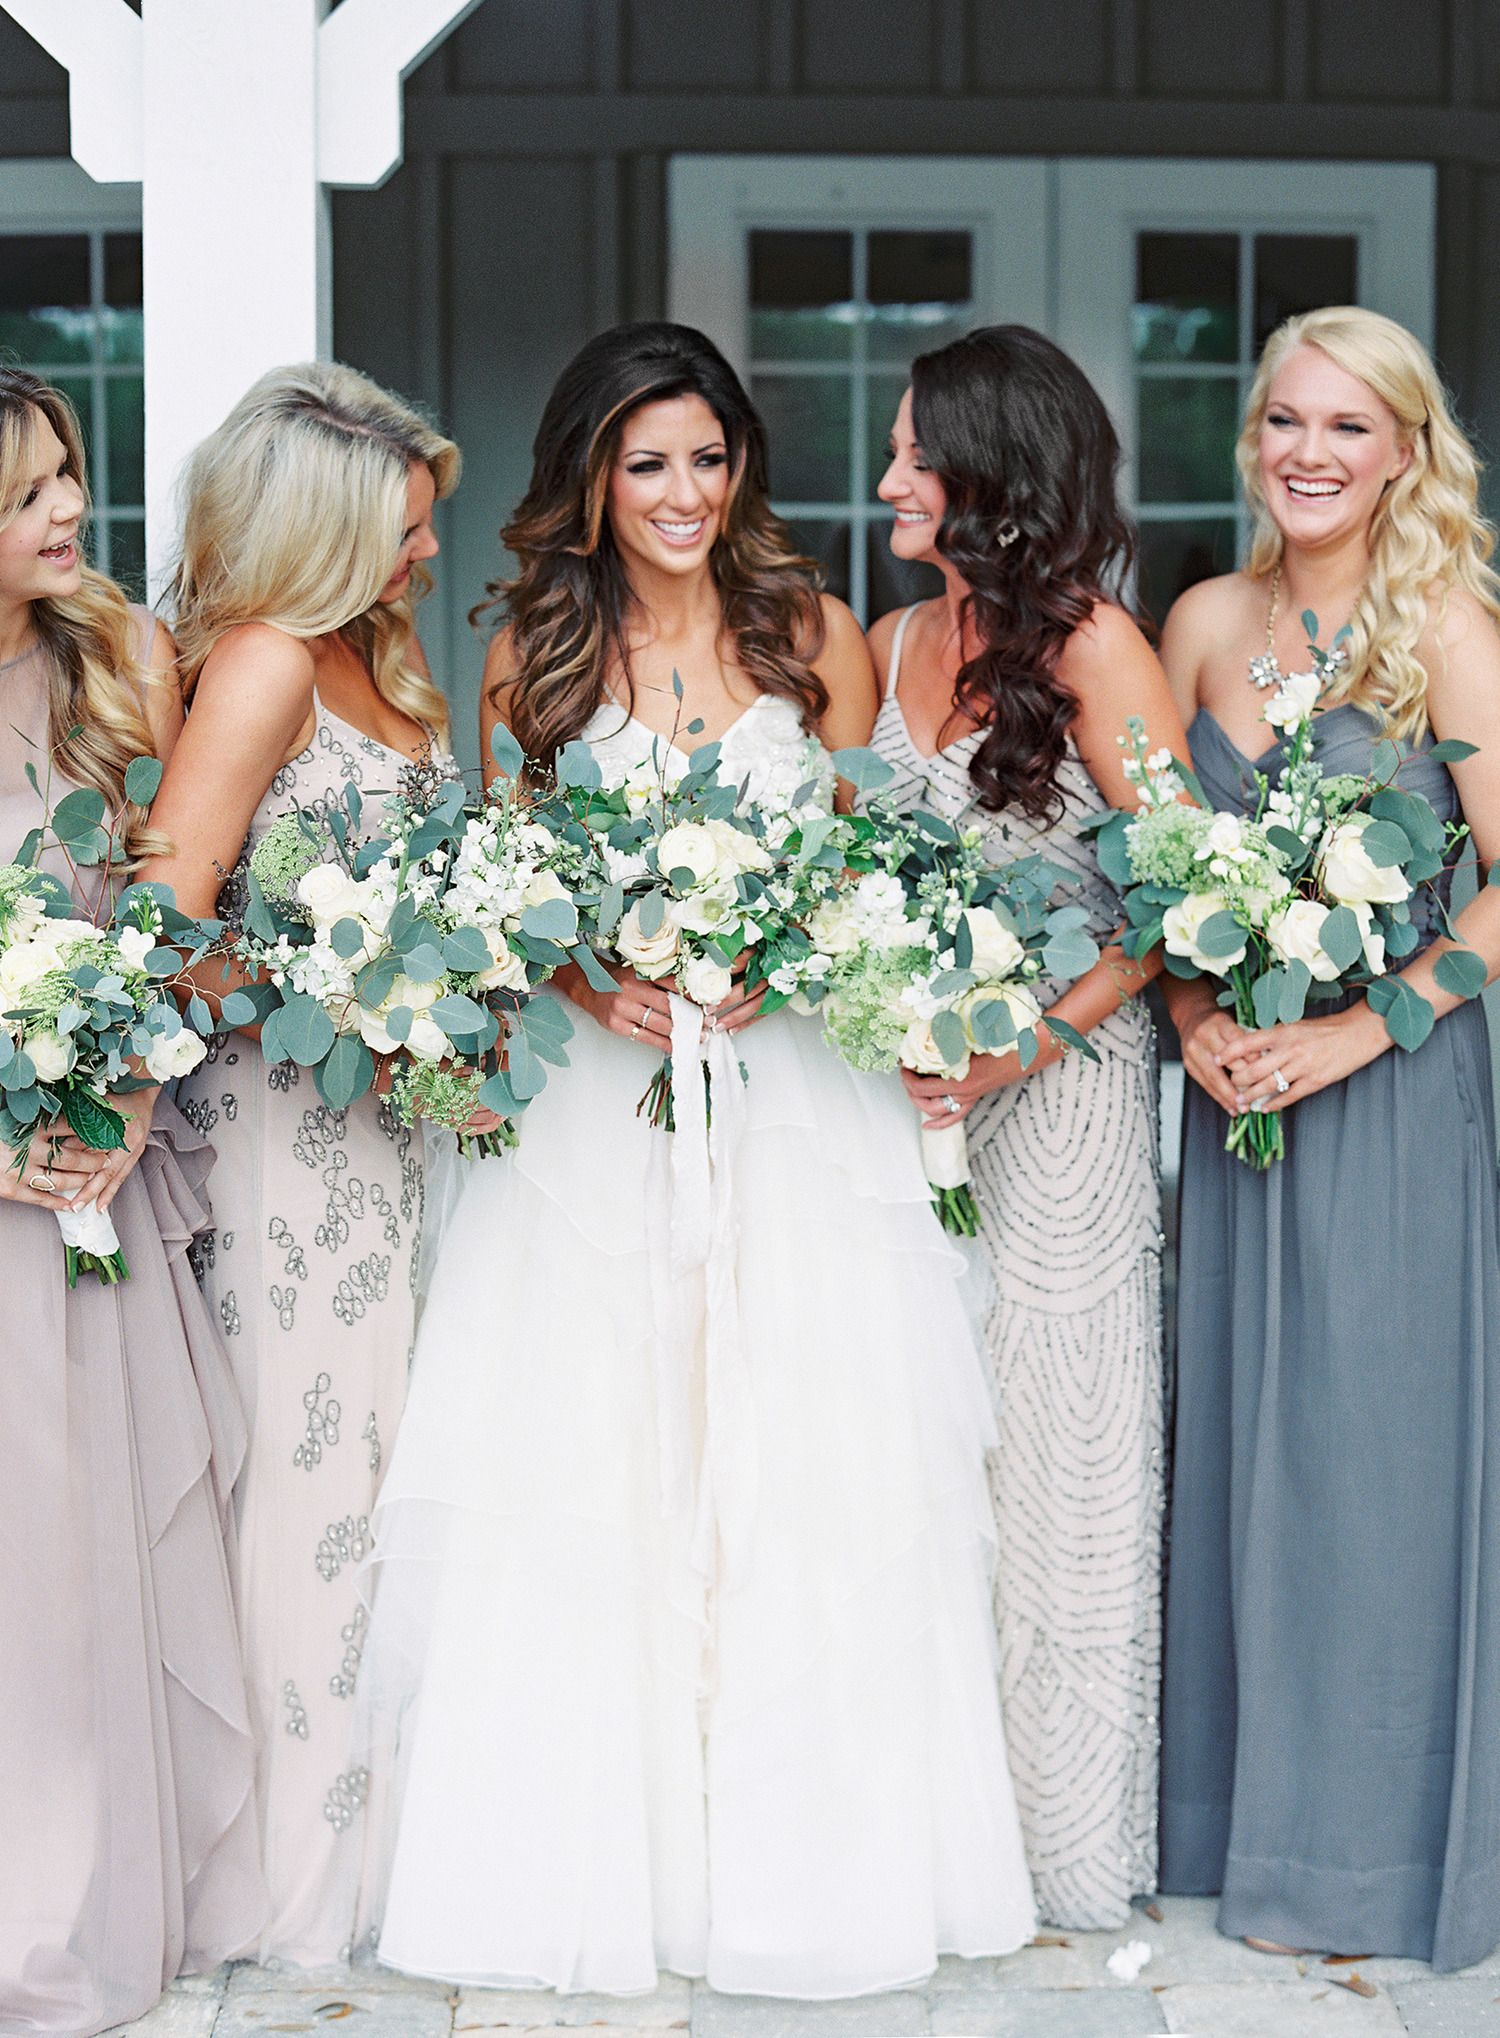 Ashley tisdale weds fianc christopher french in secret ceremony ashley tisdale weds fianc christopher french in secret ceremony vanessa hudgens bridal parties and actresses ombrellifo Choice Image